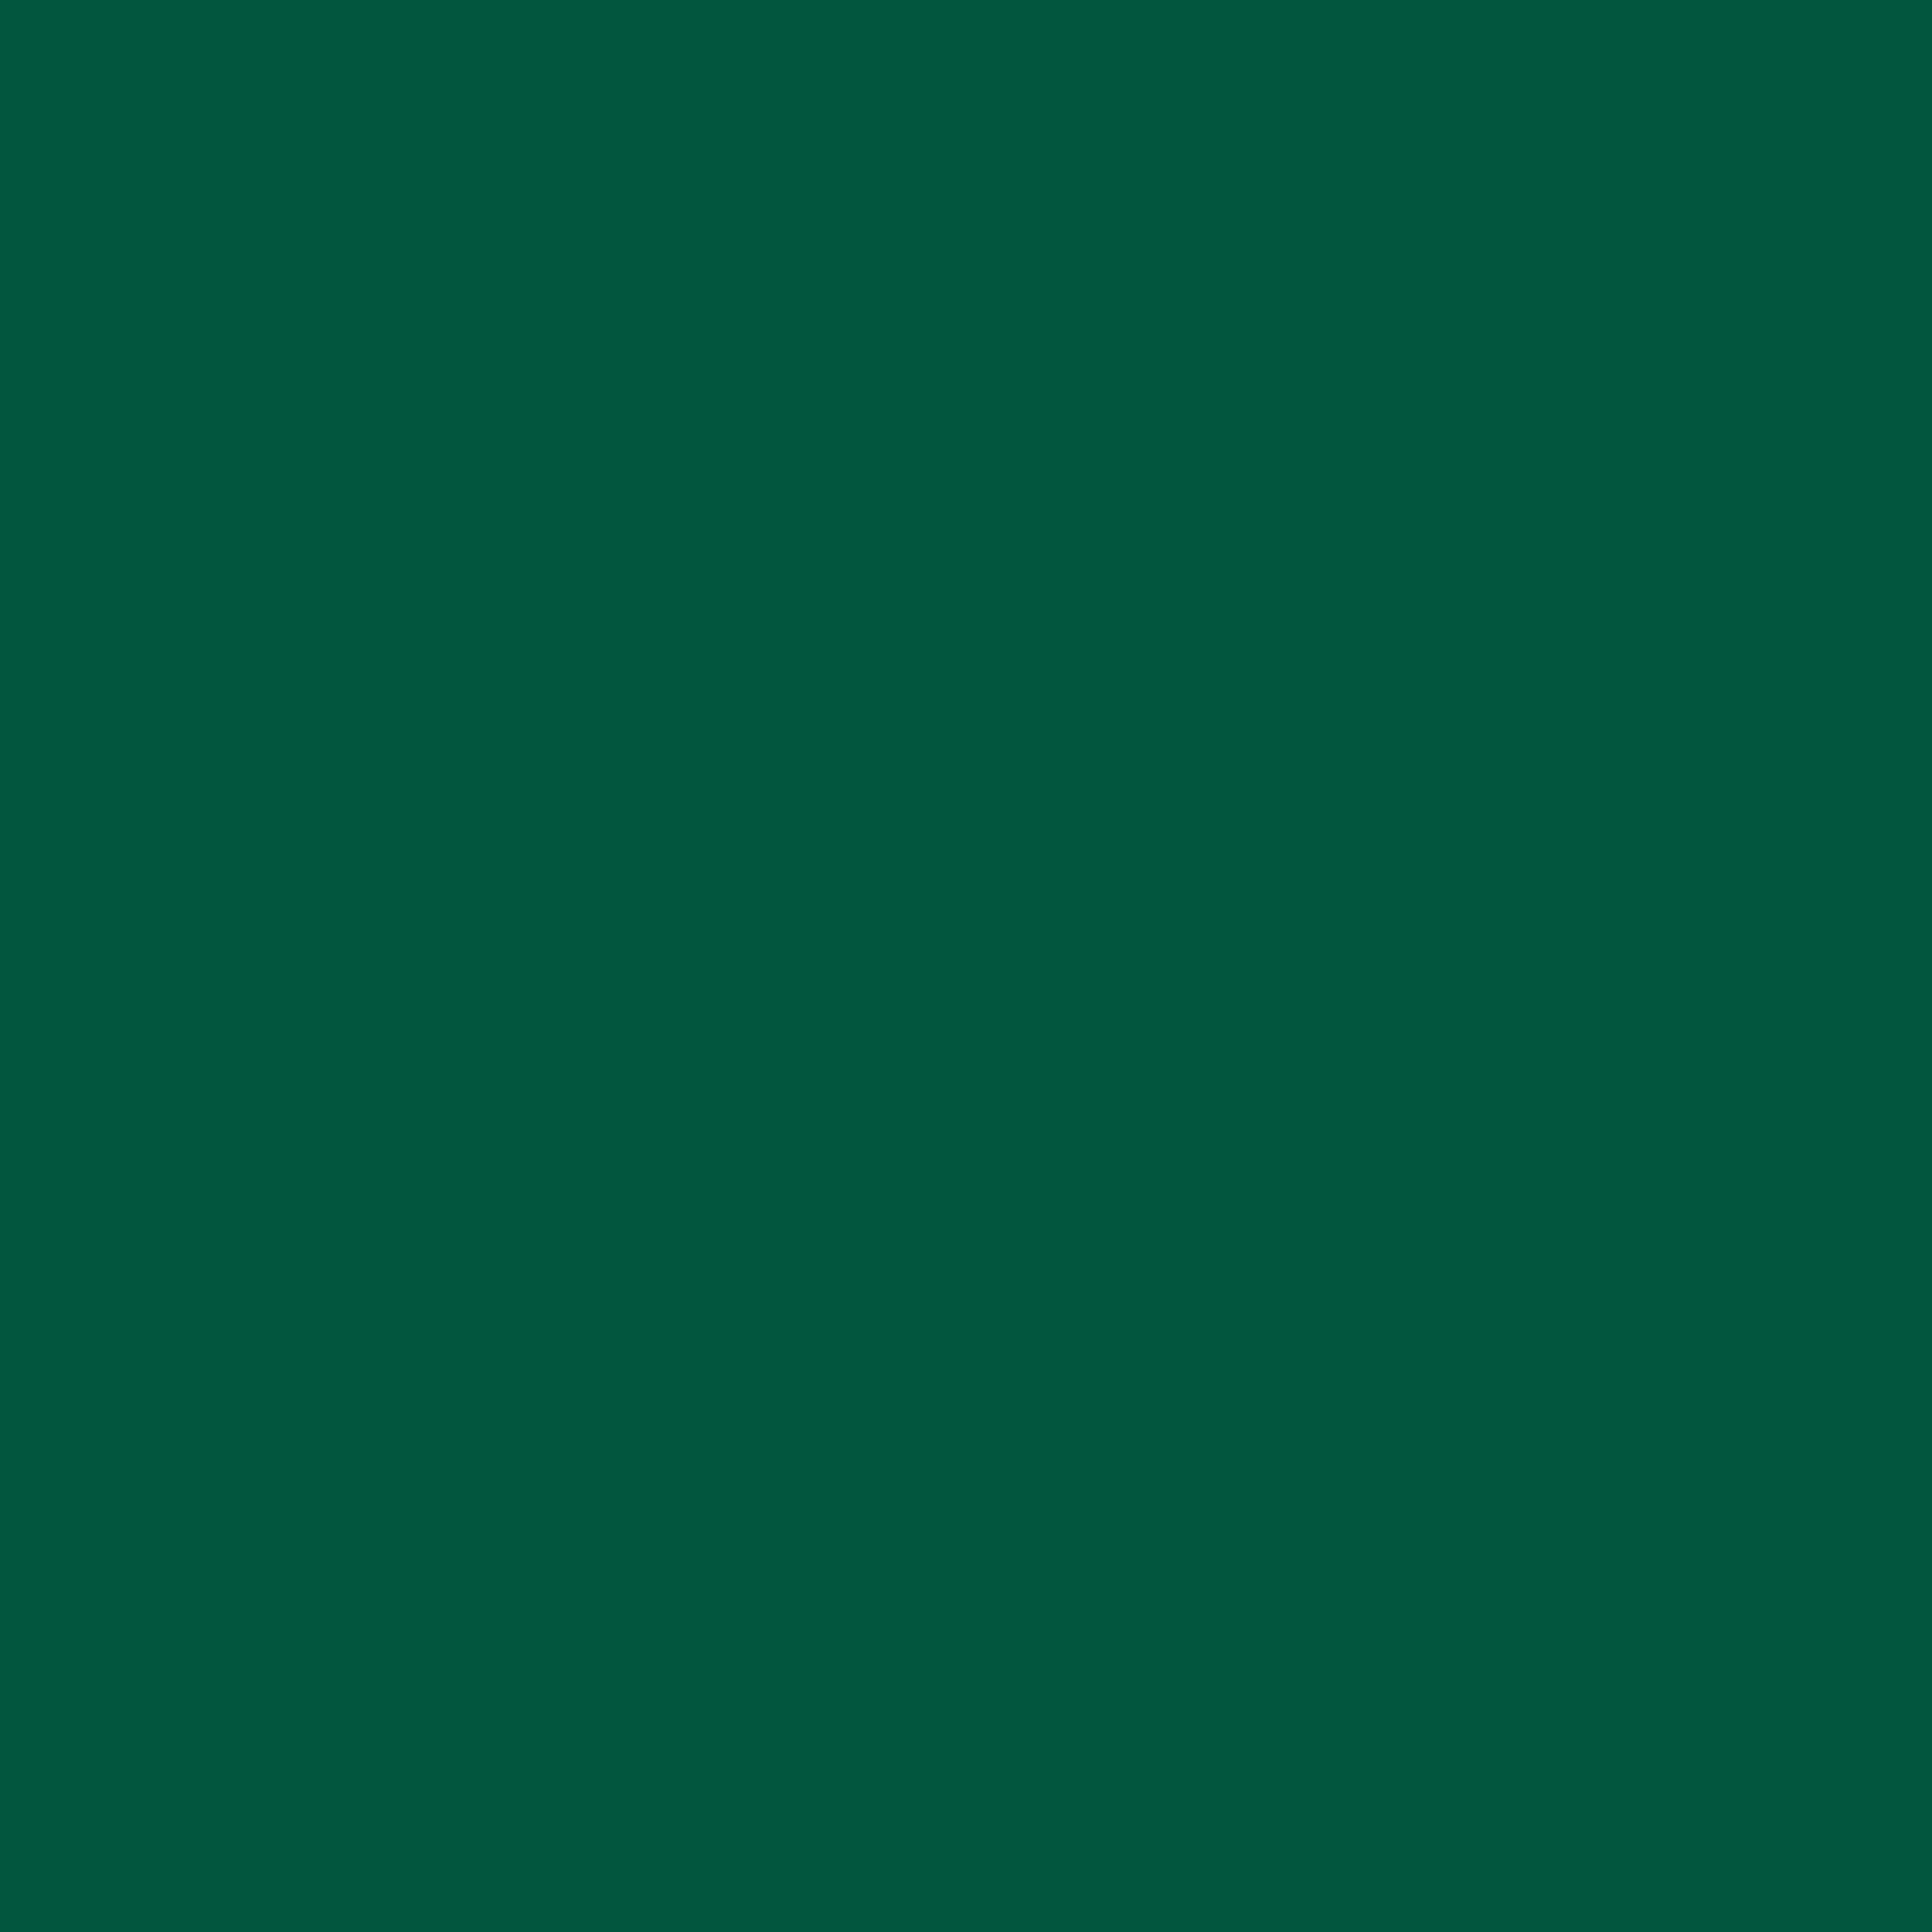 2048x2048 Sacramento State Green Solid Color Background